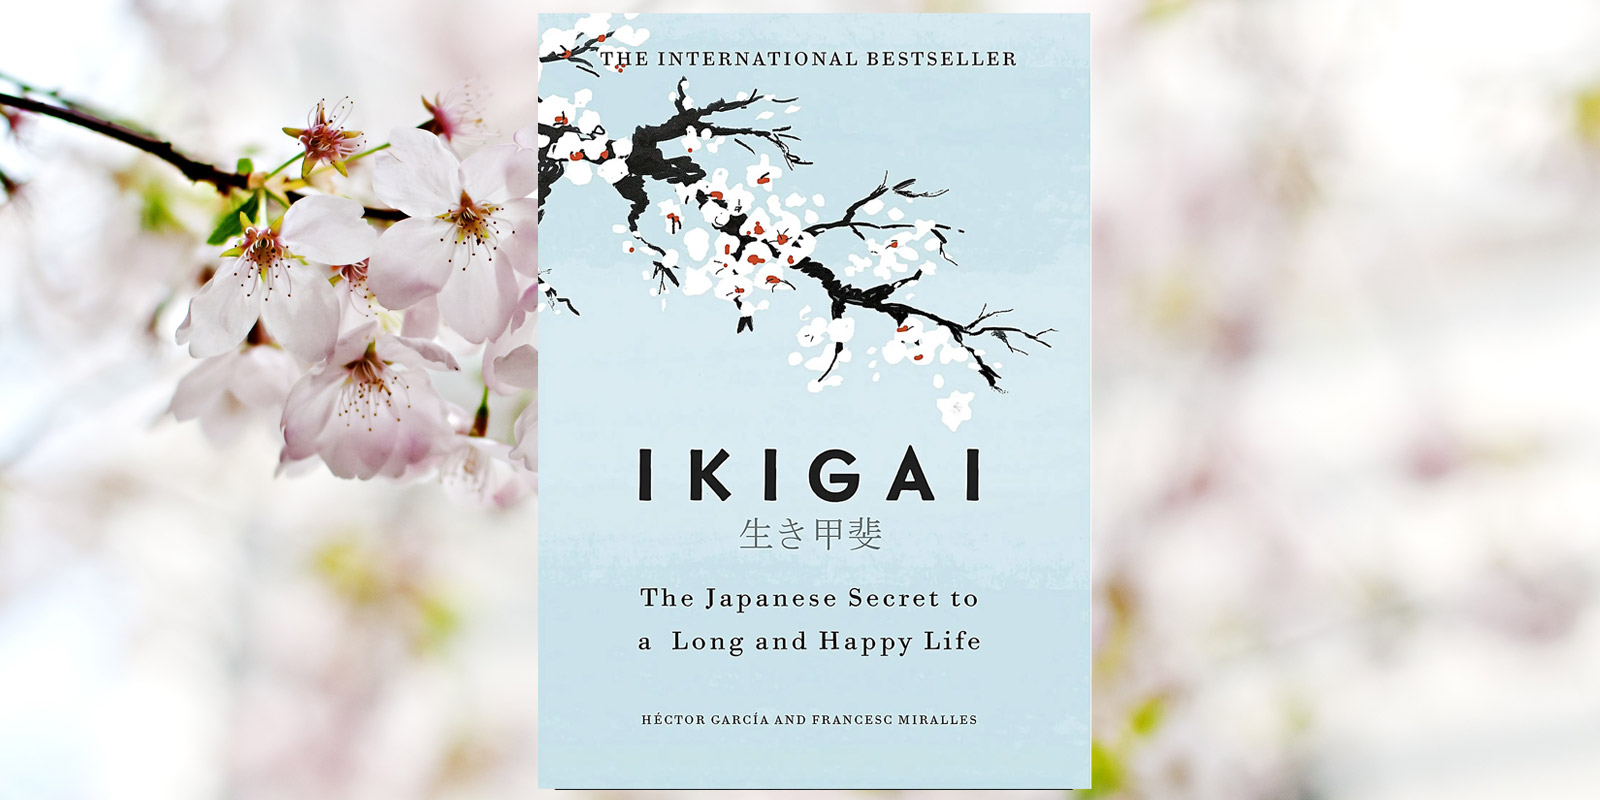 ikigai-the-japanese-secret-to-a-long-and-happy-life-review